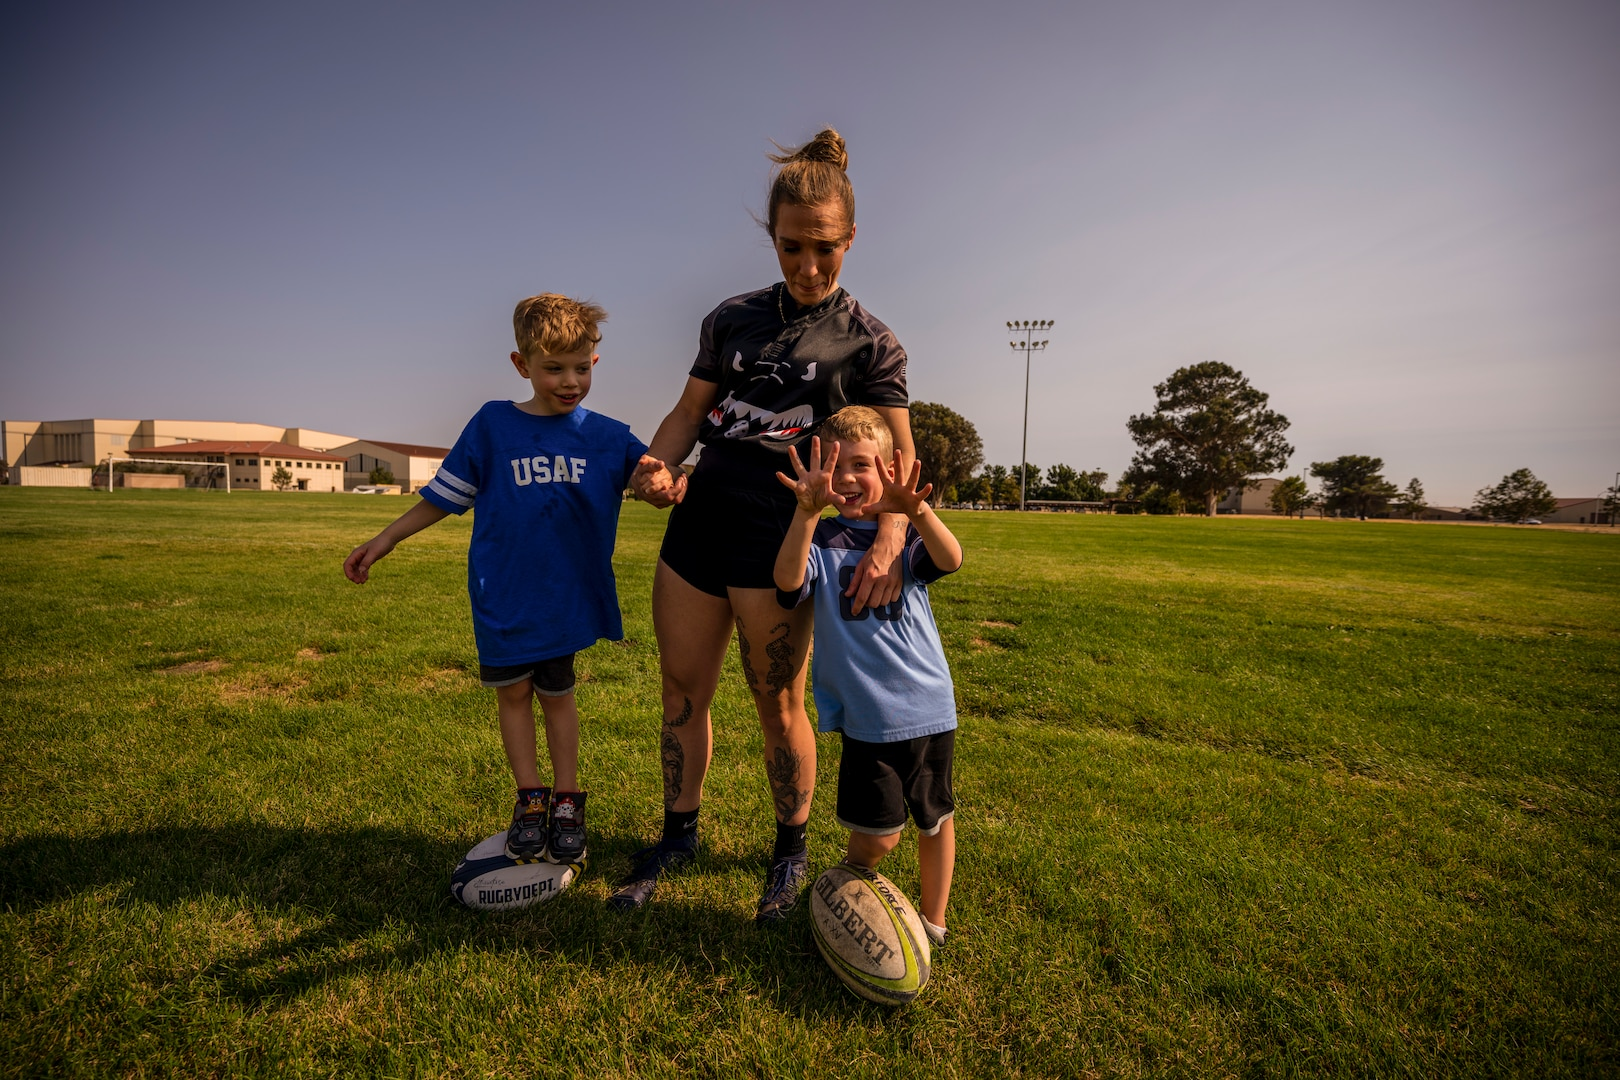 A woman stands with her two young boys on a soccer field while they hold rugby balls.